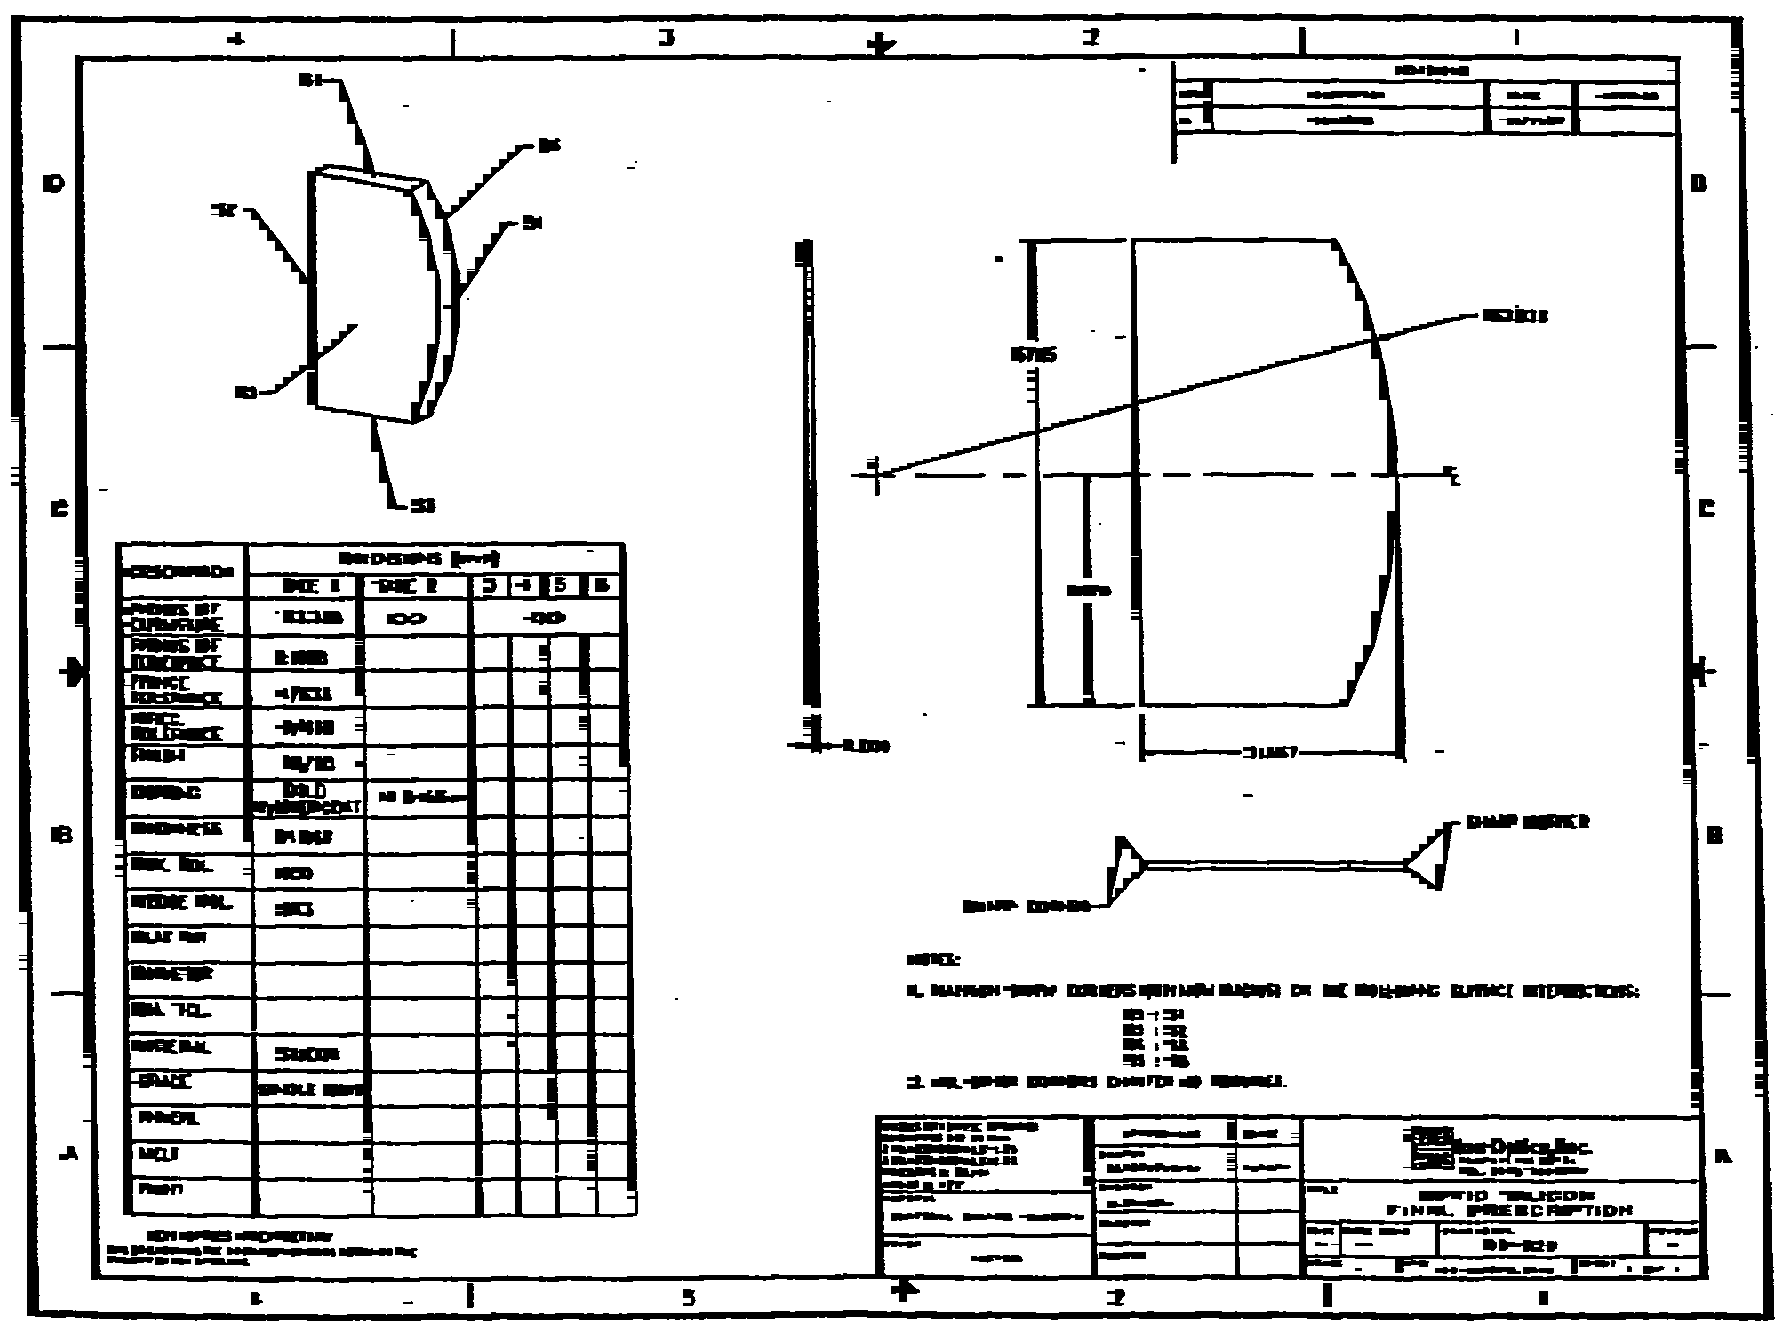 Wo1999053350a9 Monolithic Infrared Spectrometer Apparatus And Rover Mems Wiring Diagram Figure Imgf000050 0001